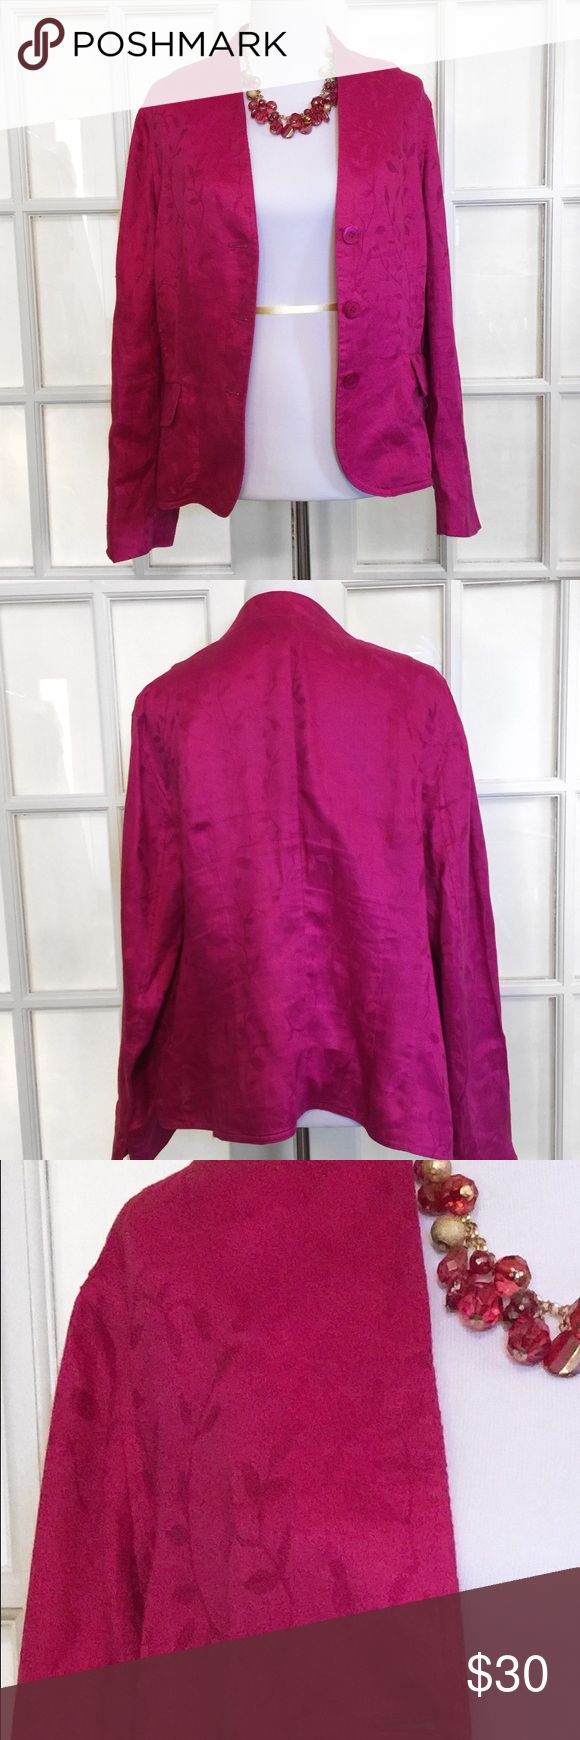 Jones New York Fuchsia Blazer This is a smart and stylish Blazer, perfect for work or social events! Features a lovely vine and leaf design 🍂 Dry Clean Jones New York Jackets & Coats Blazers